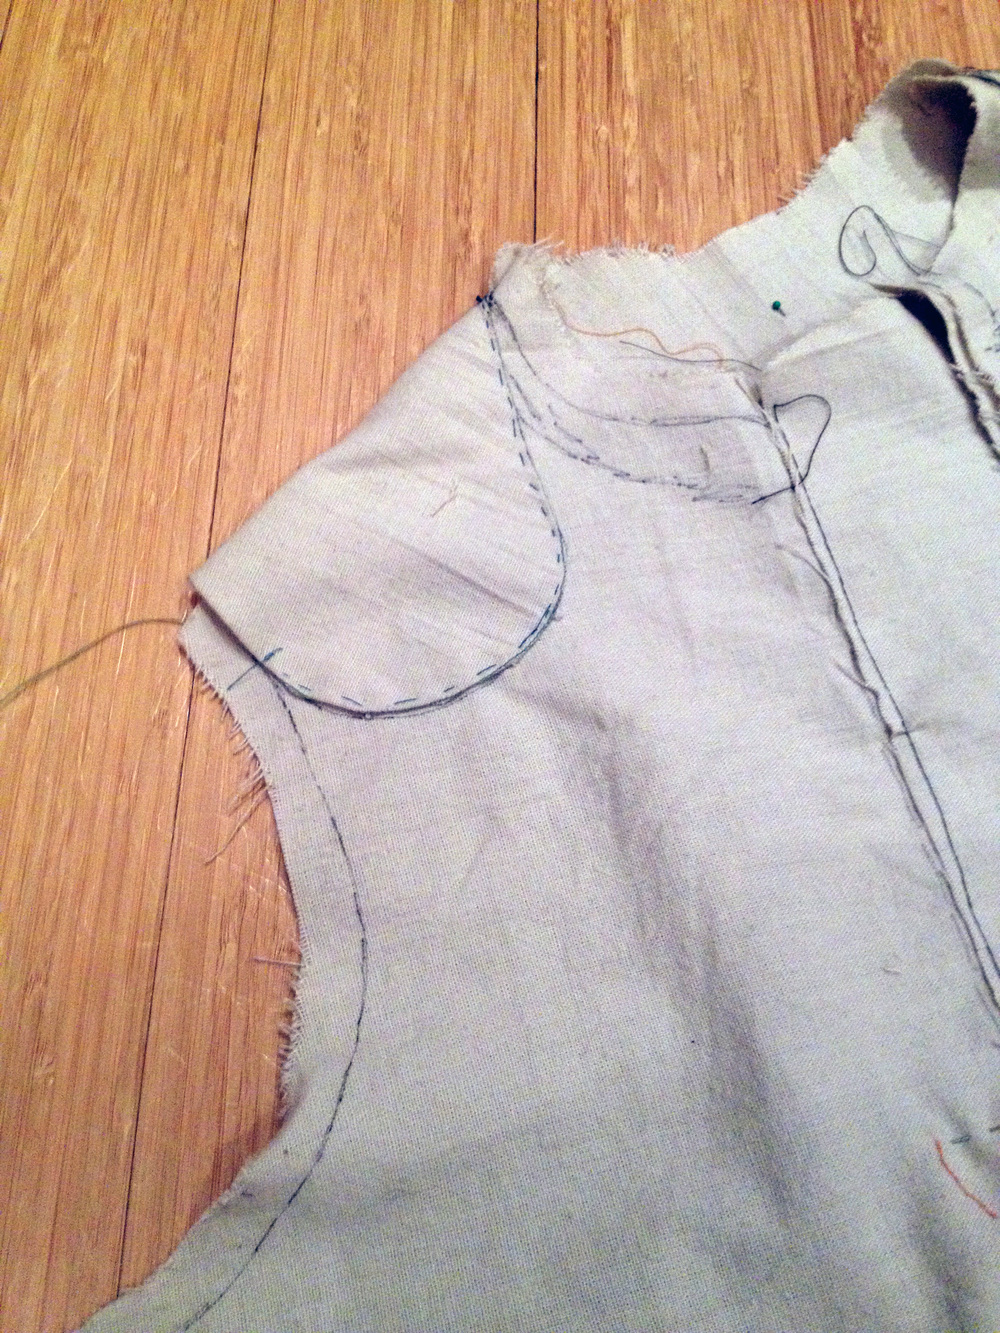 Baste-stitching the round seam on the shoulder